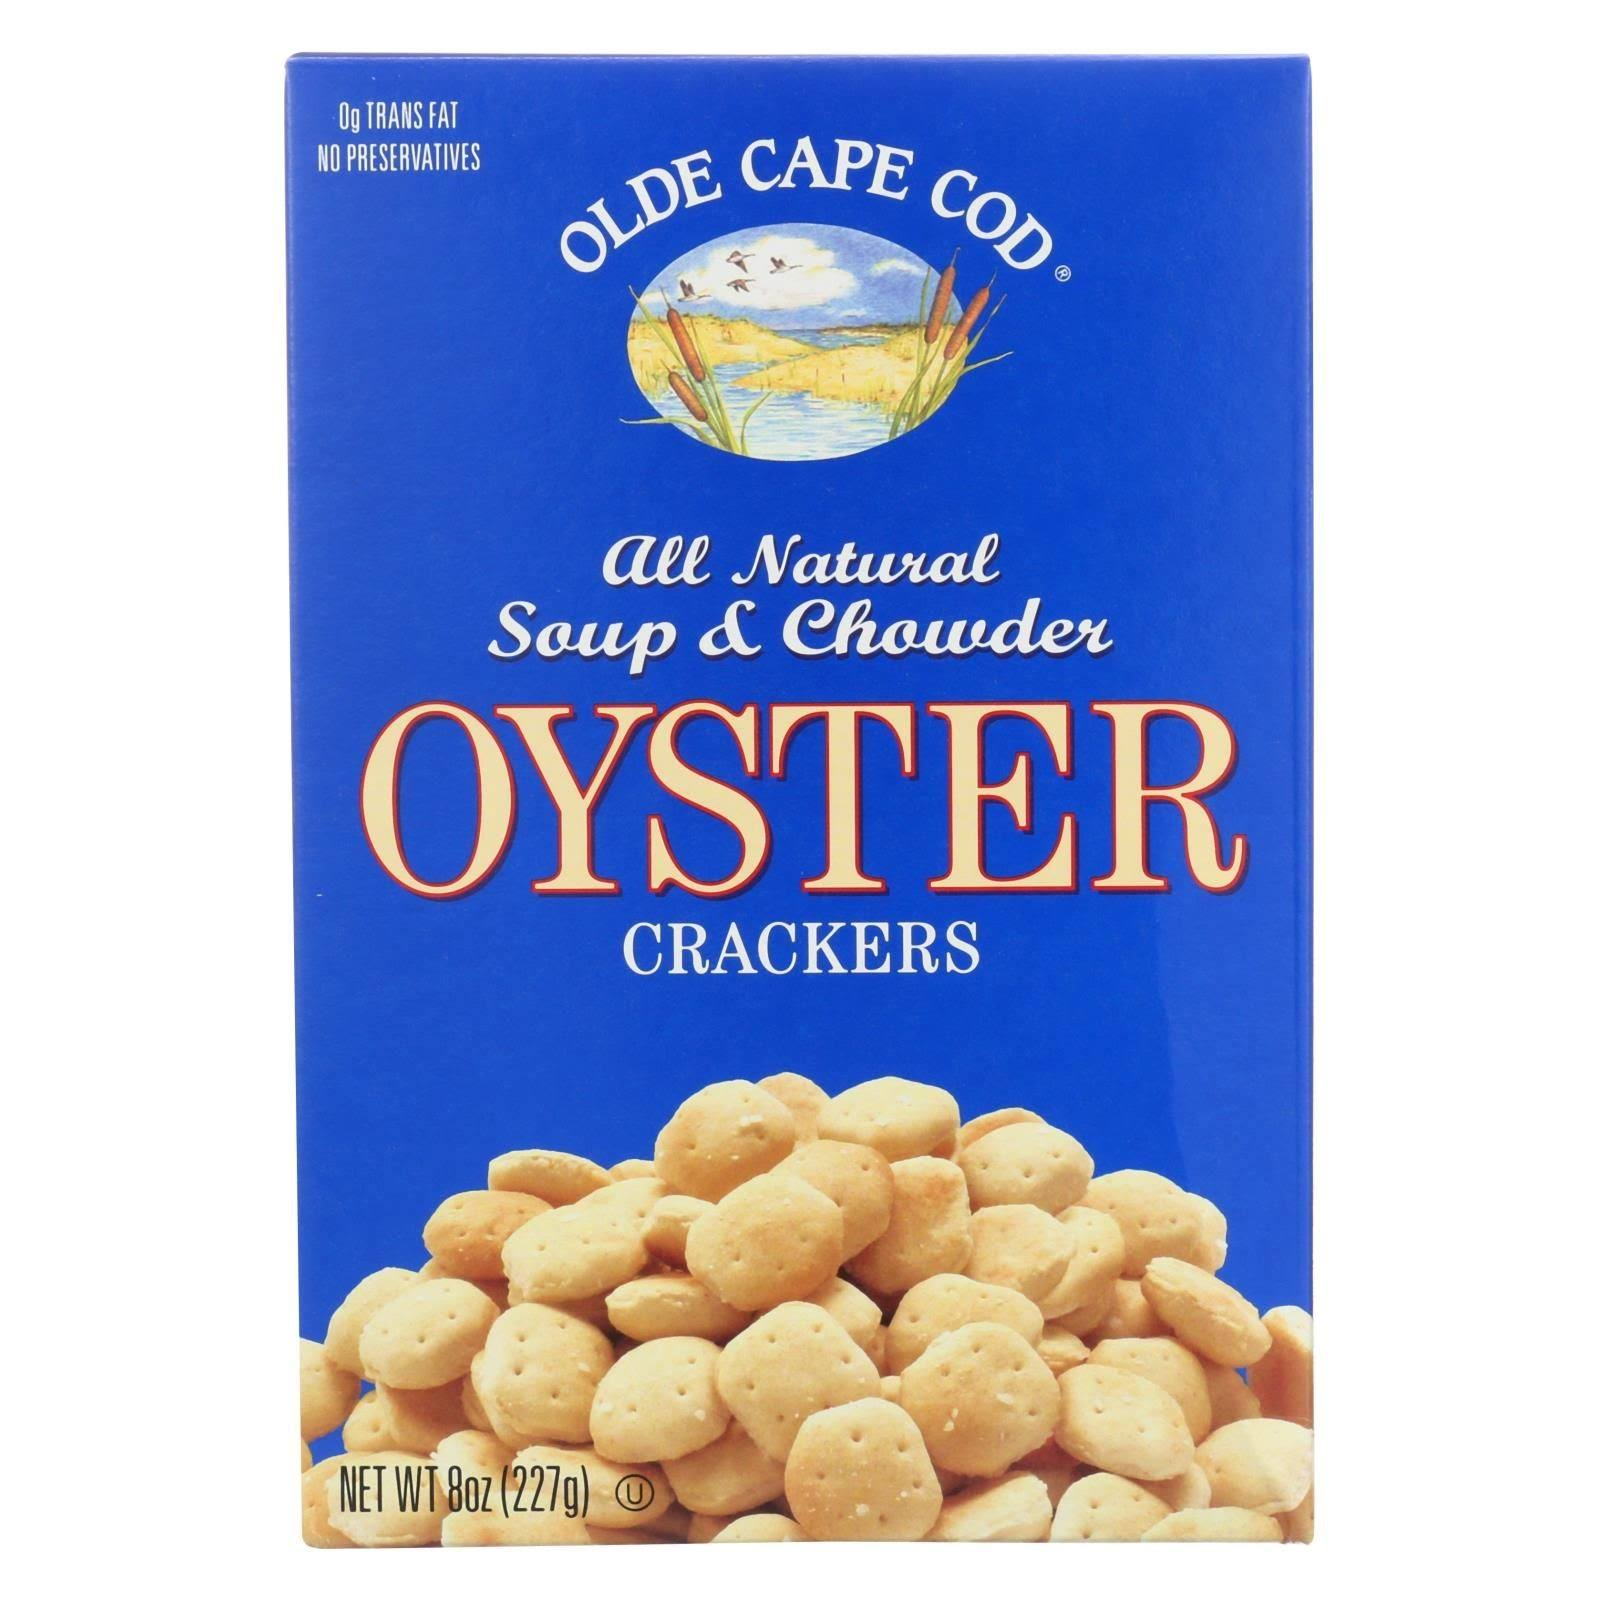 Olde Cape Cod Oyster Crackers - 8oz